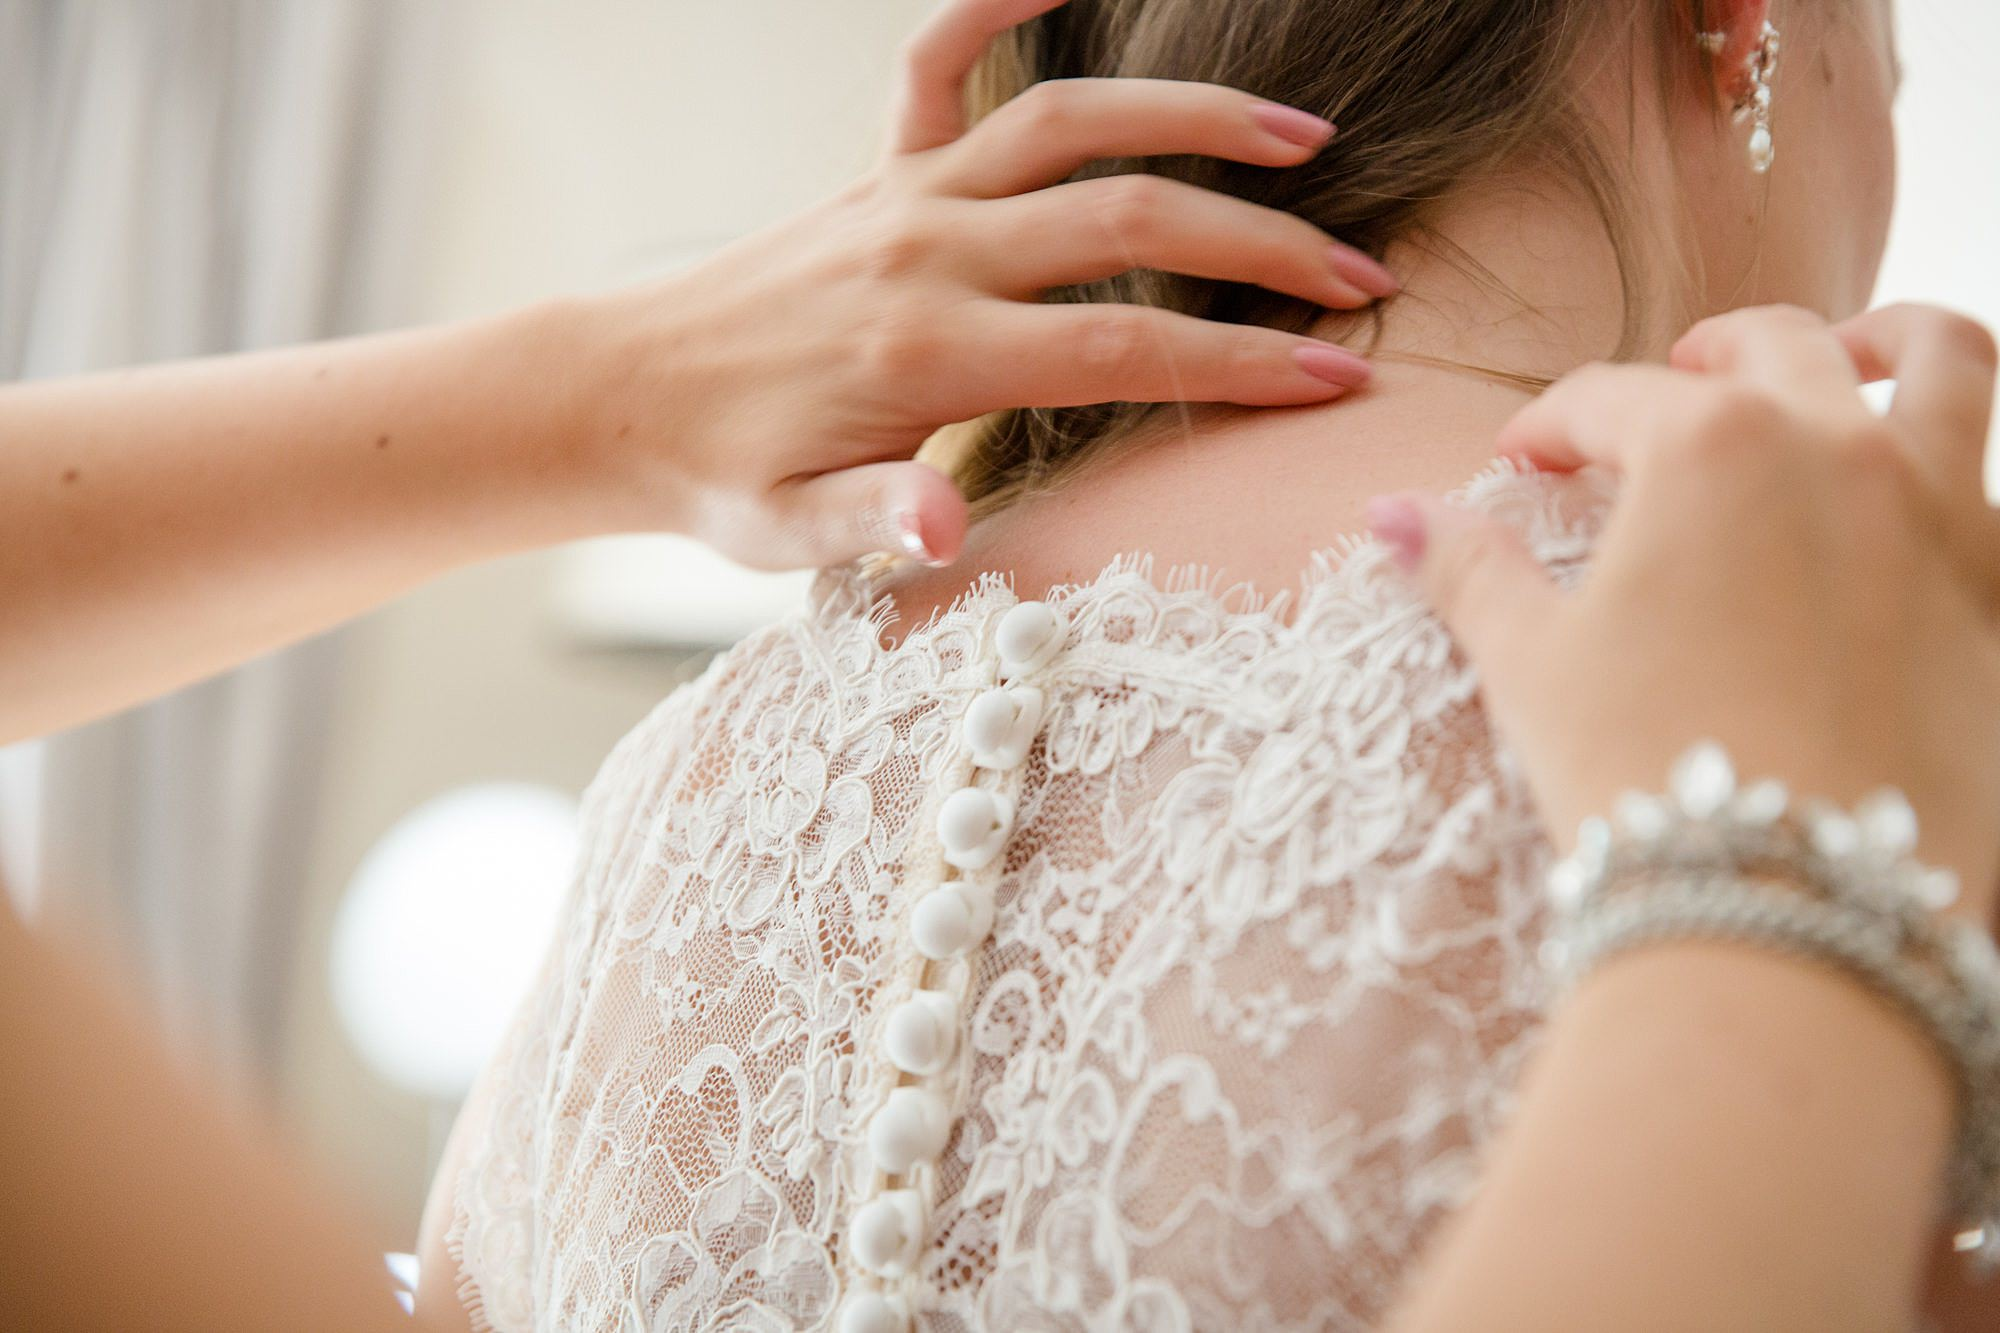 Writtle university college wedding final touches to wedding dress